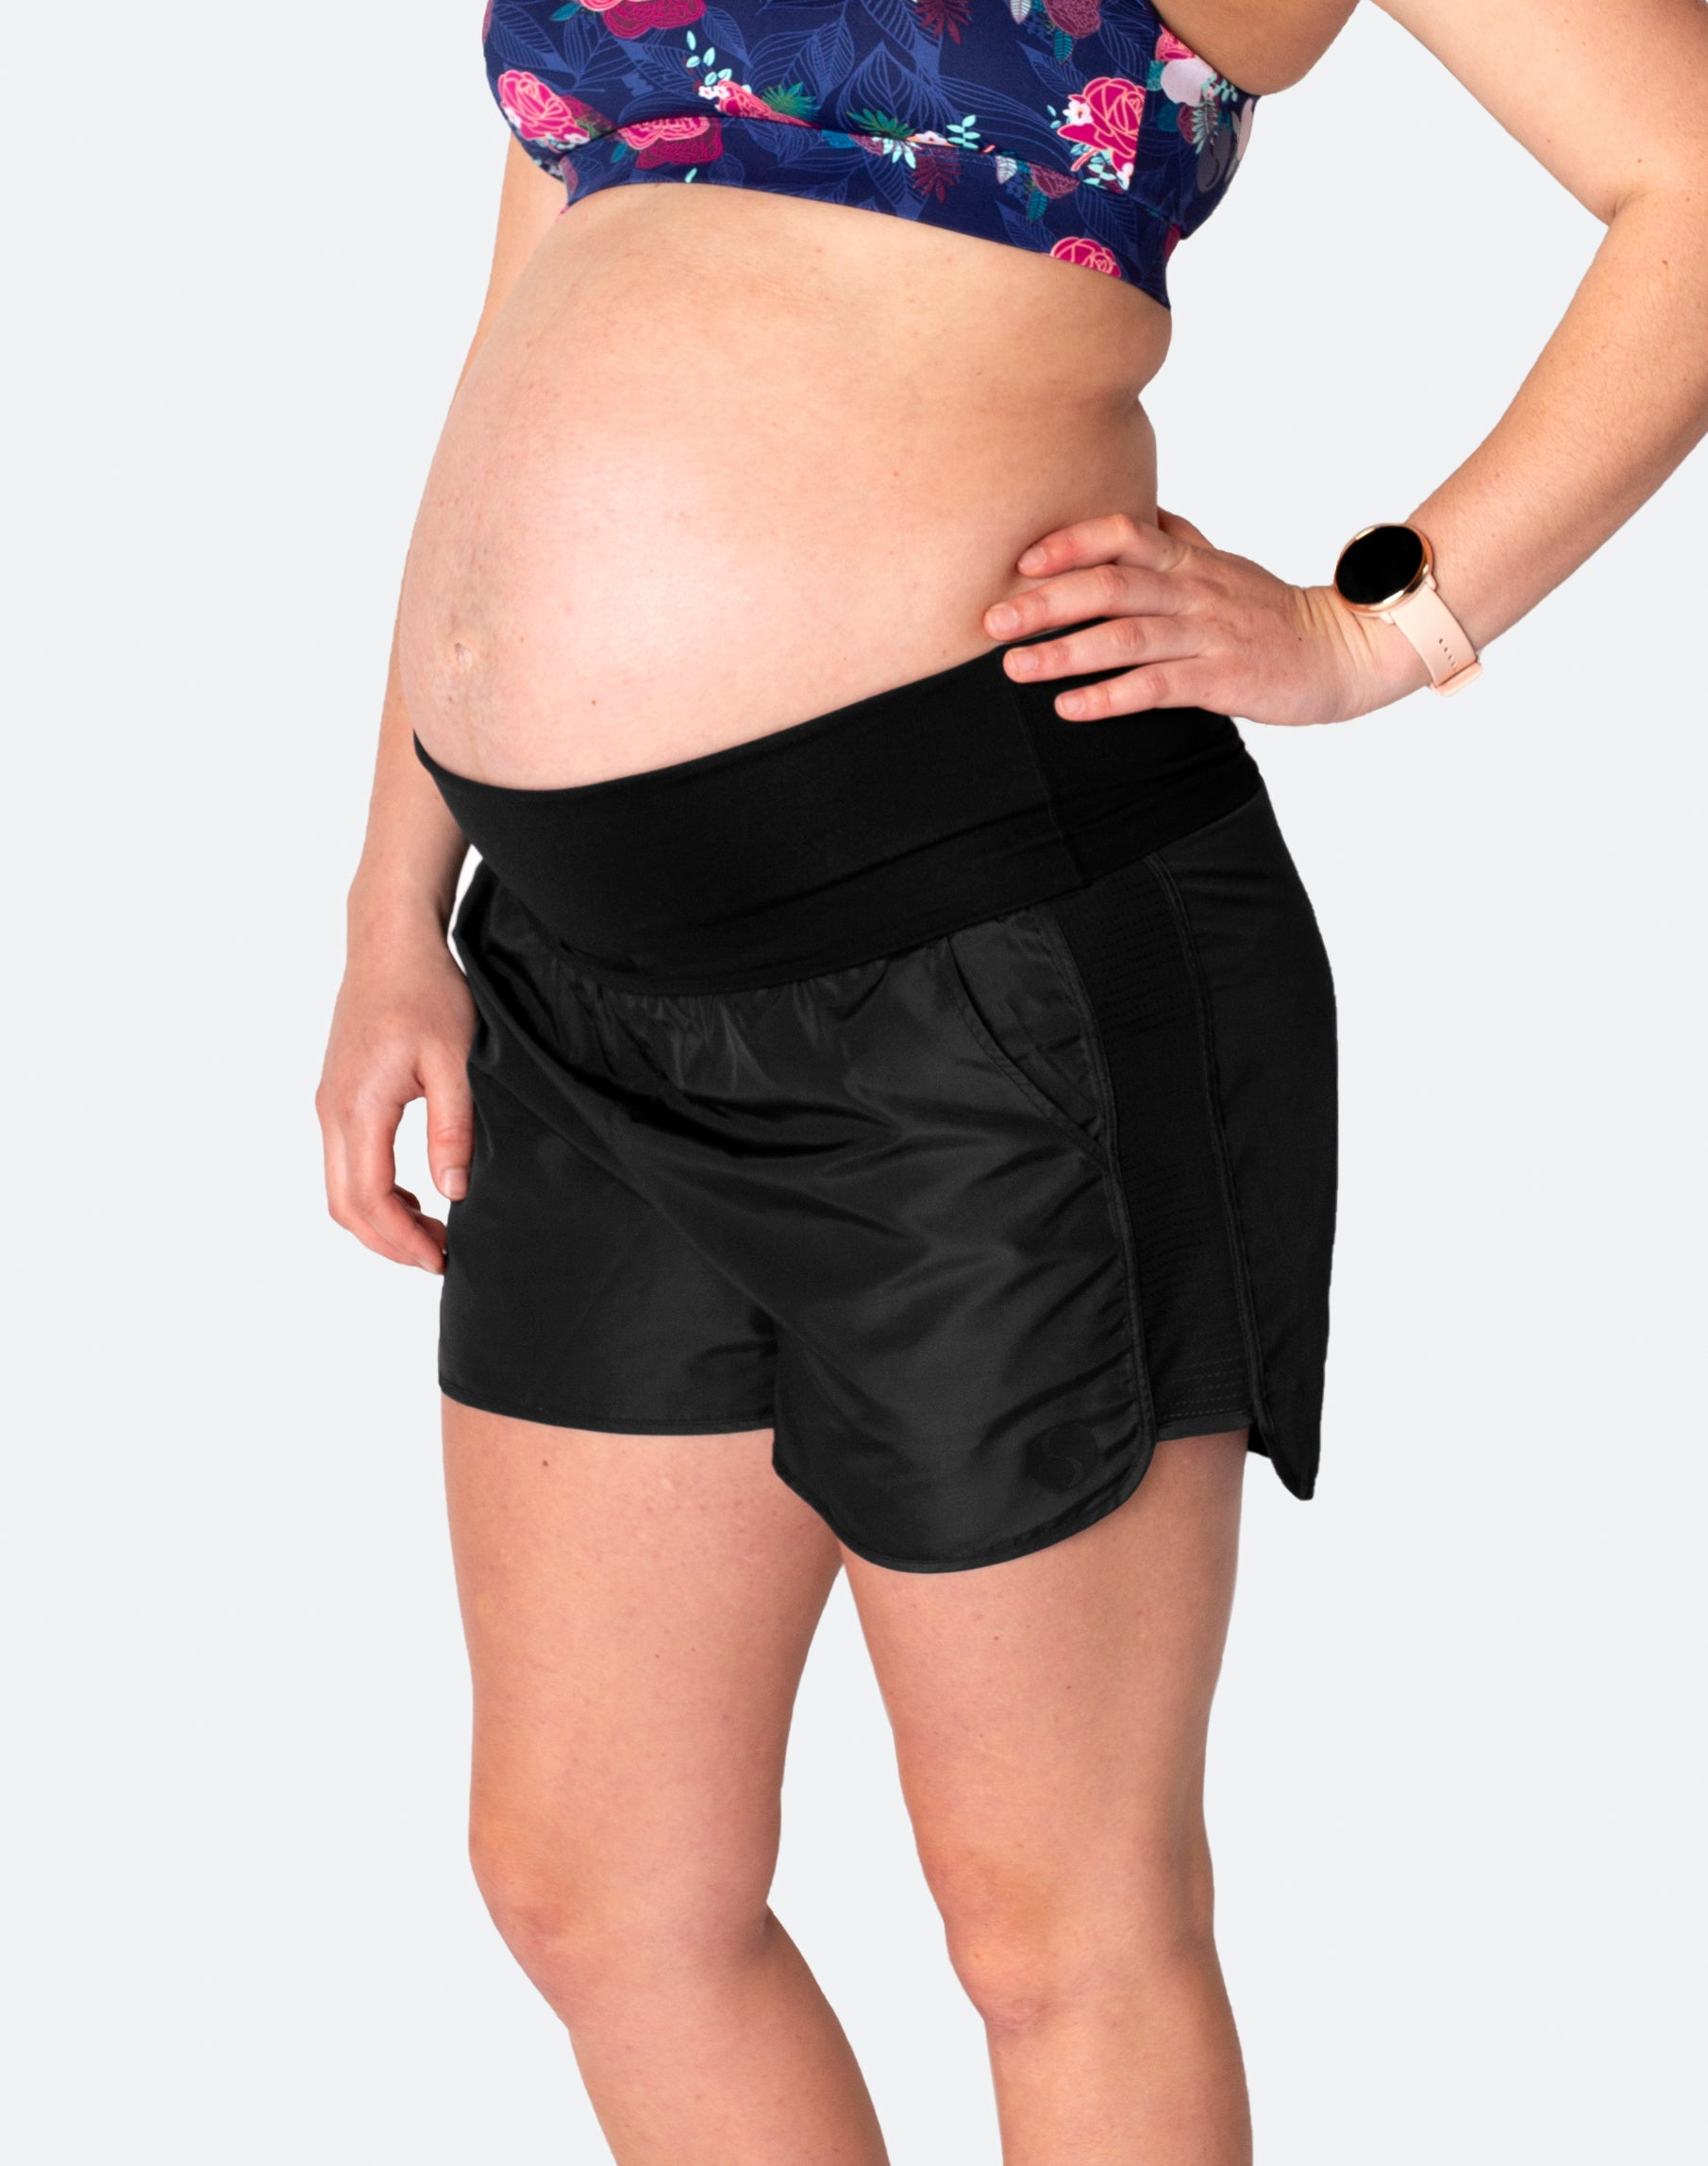 pregnant woman wearing high waisted running shorts folded under the bump